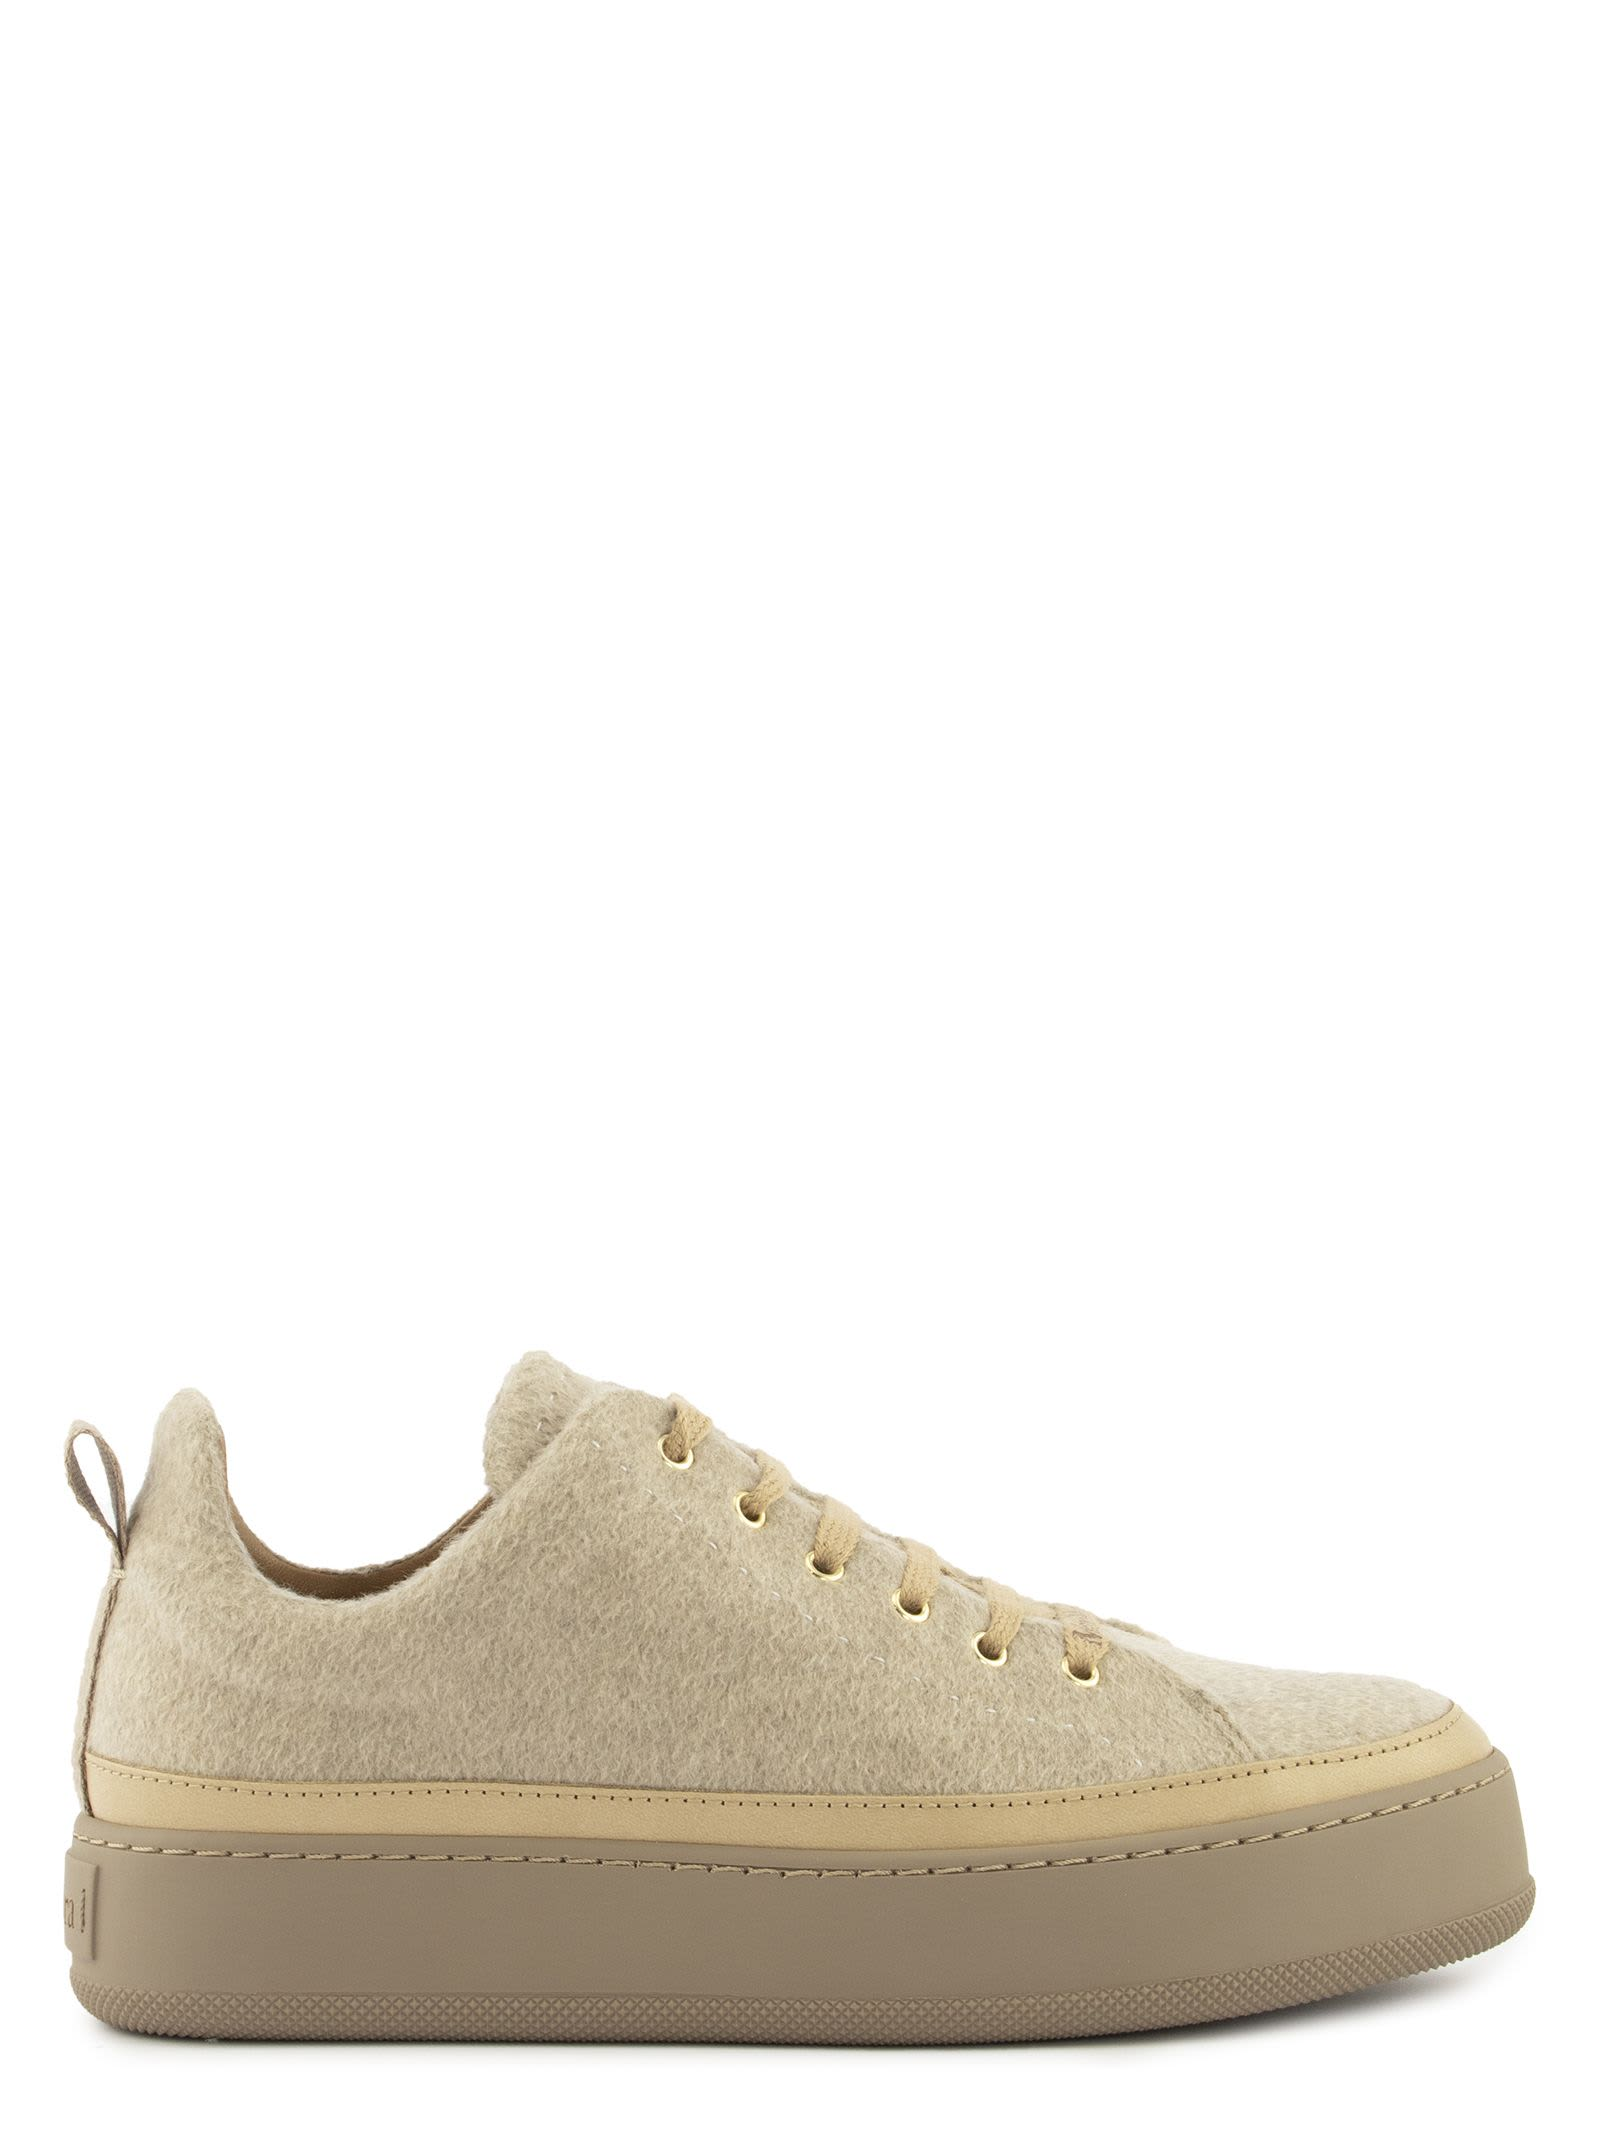 Max Mara Tunny Lace-up Sneakers